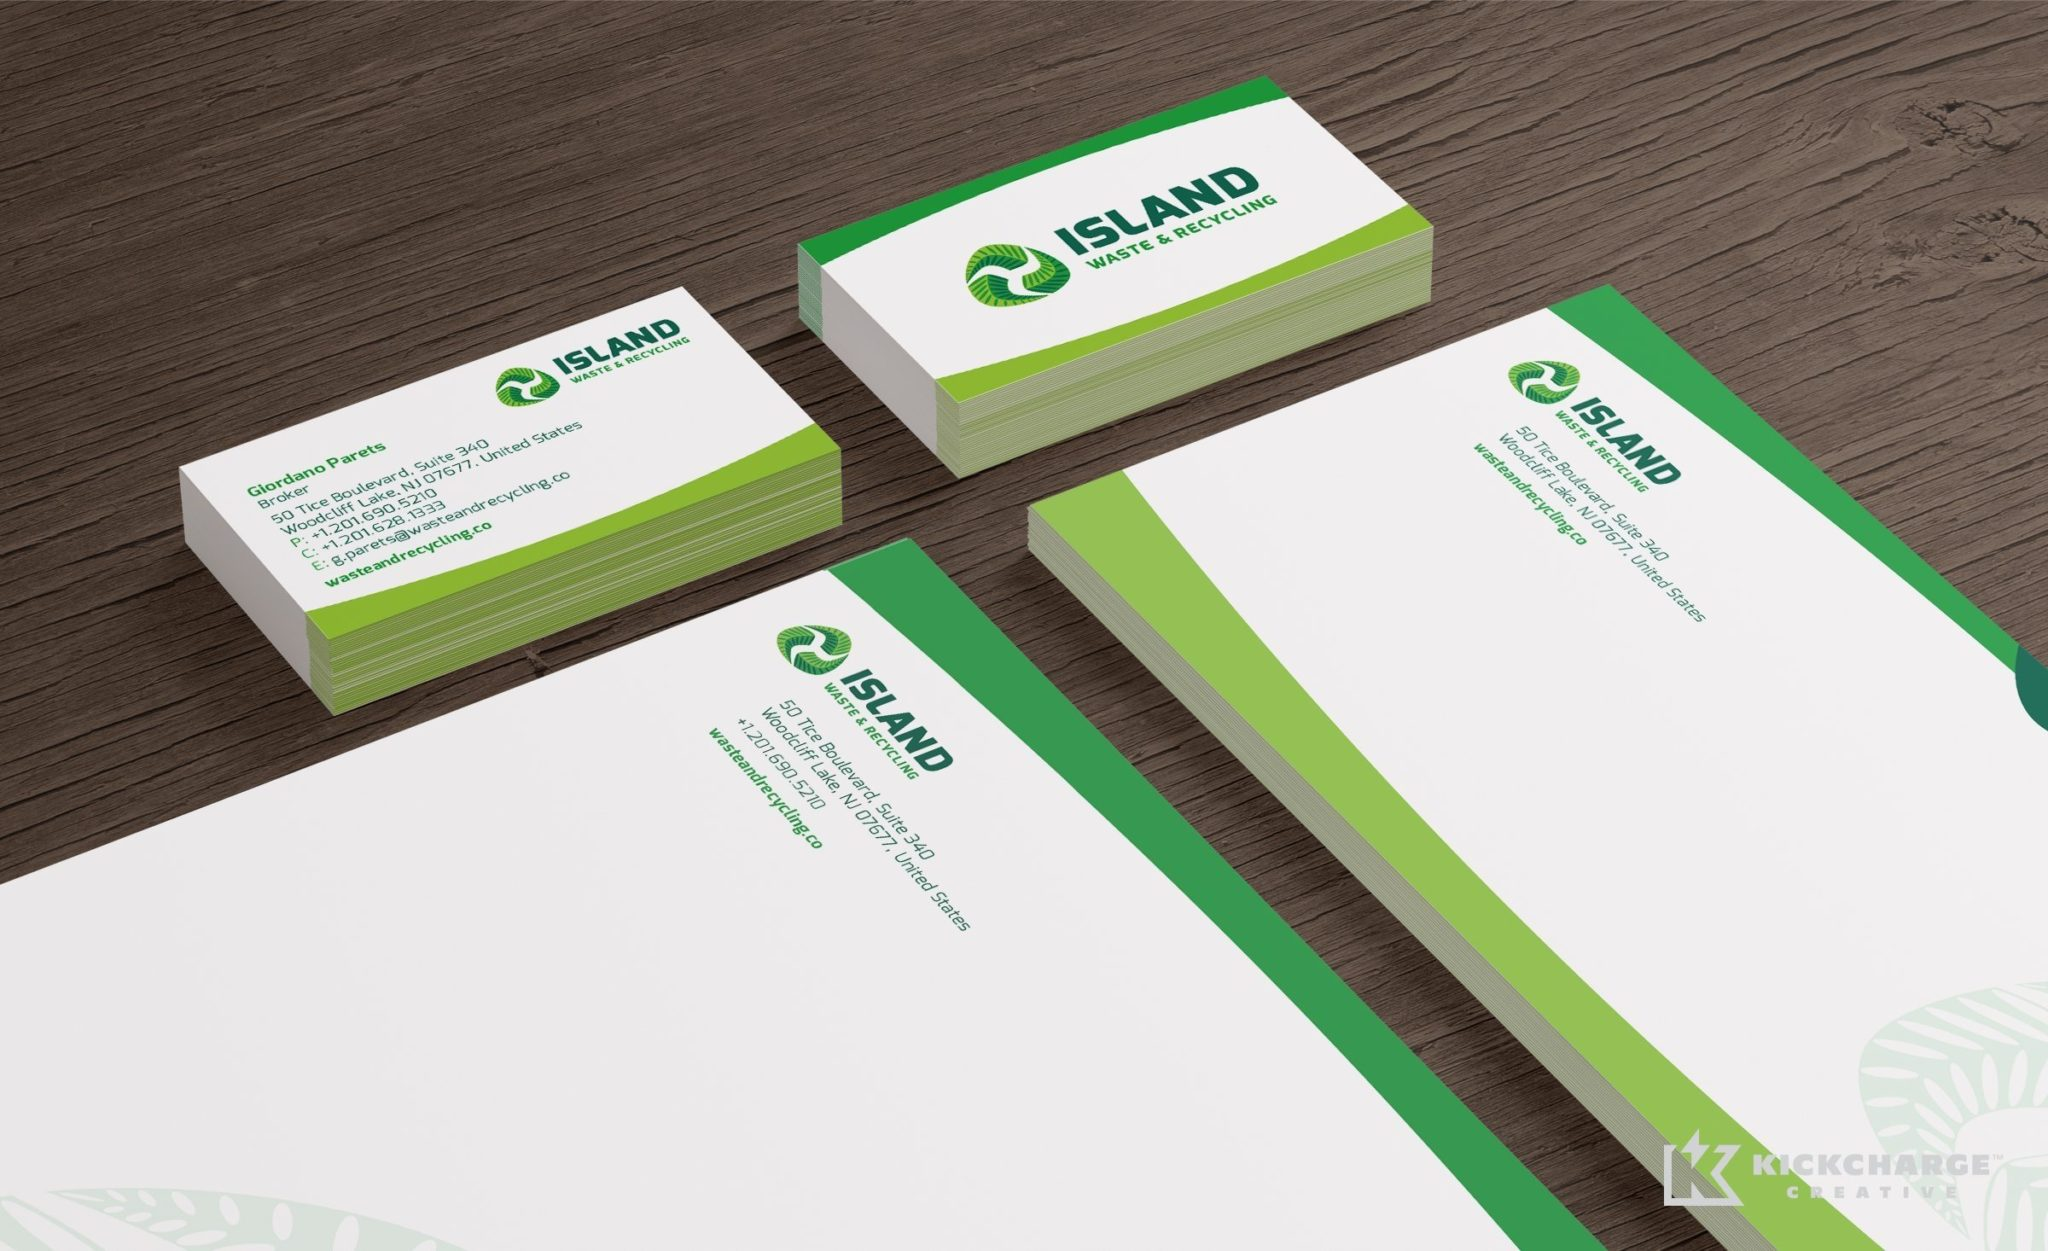 Branding and stationery design for a waste and recycling brokerage firm located in Woodcliff Lake, NJ.